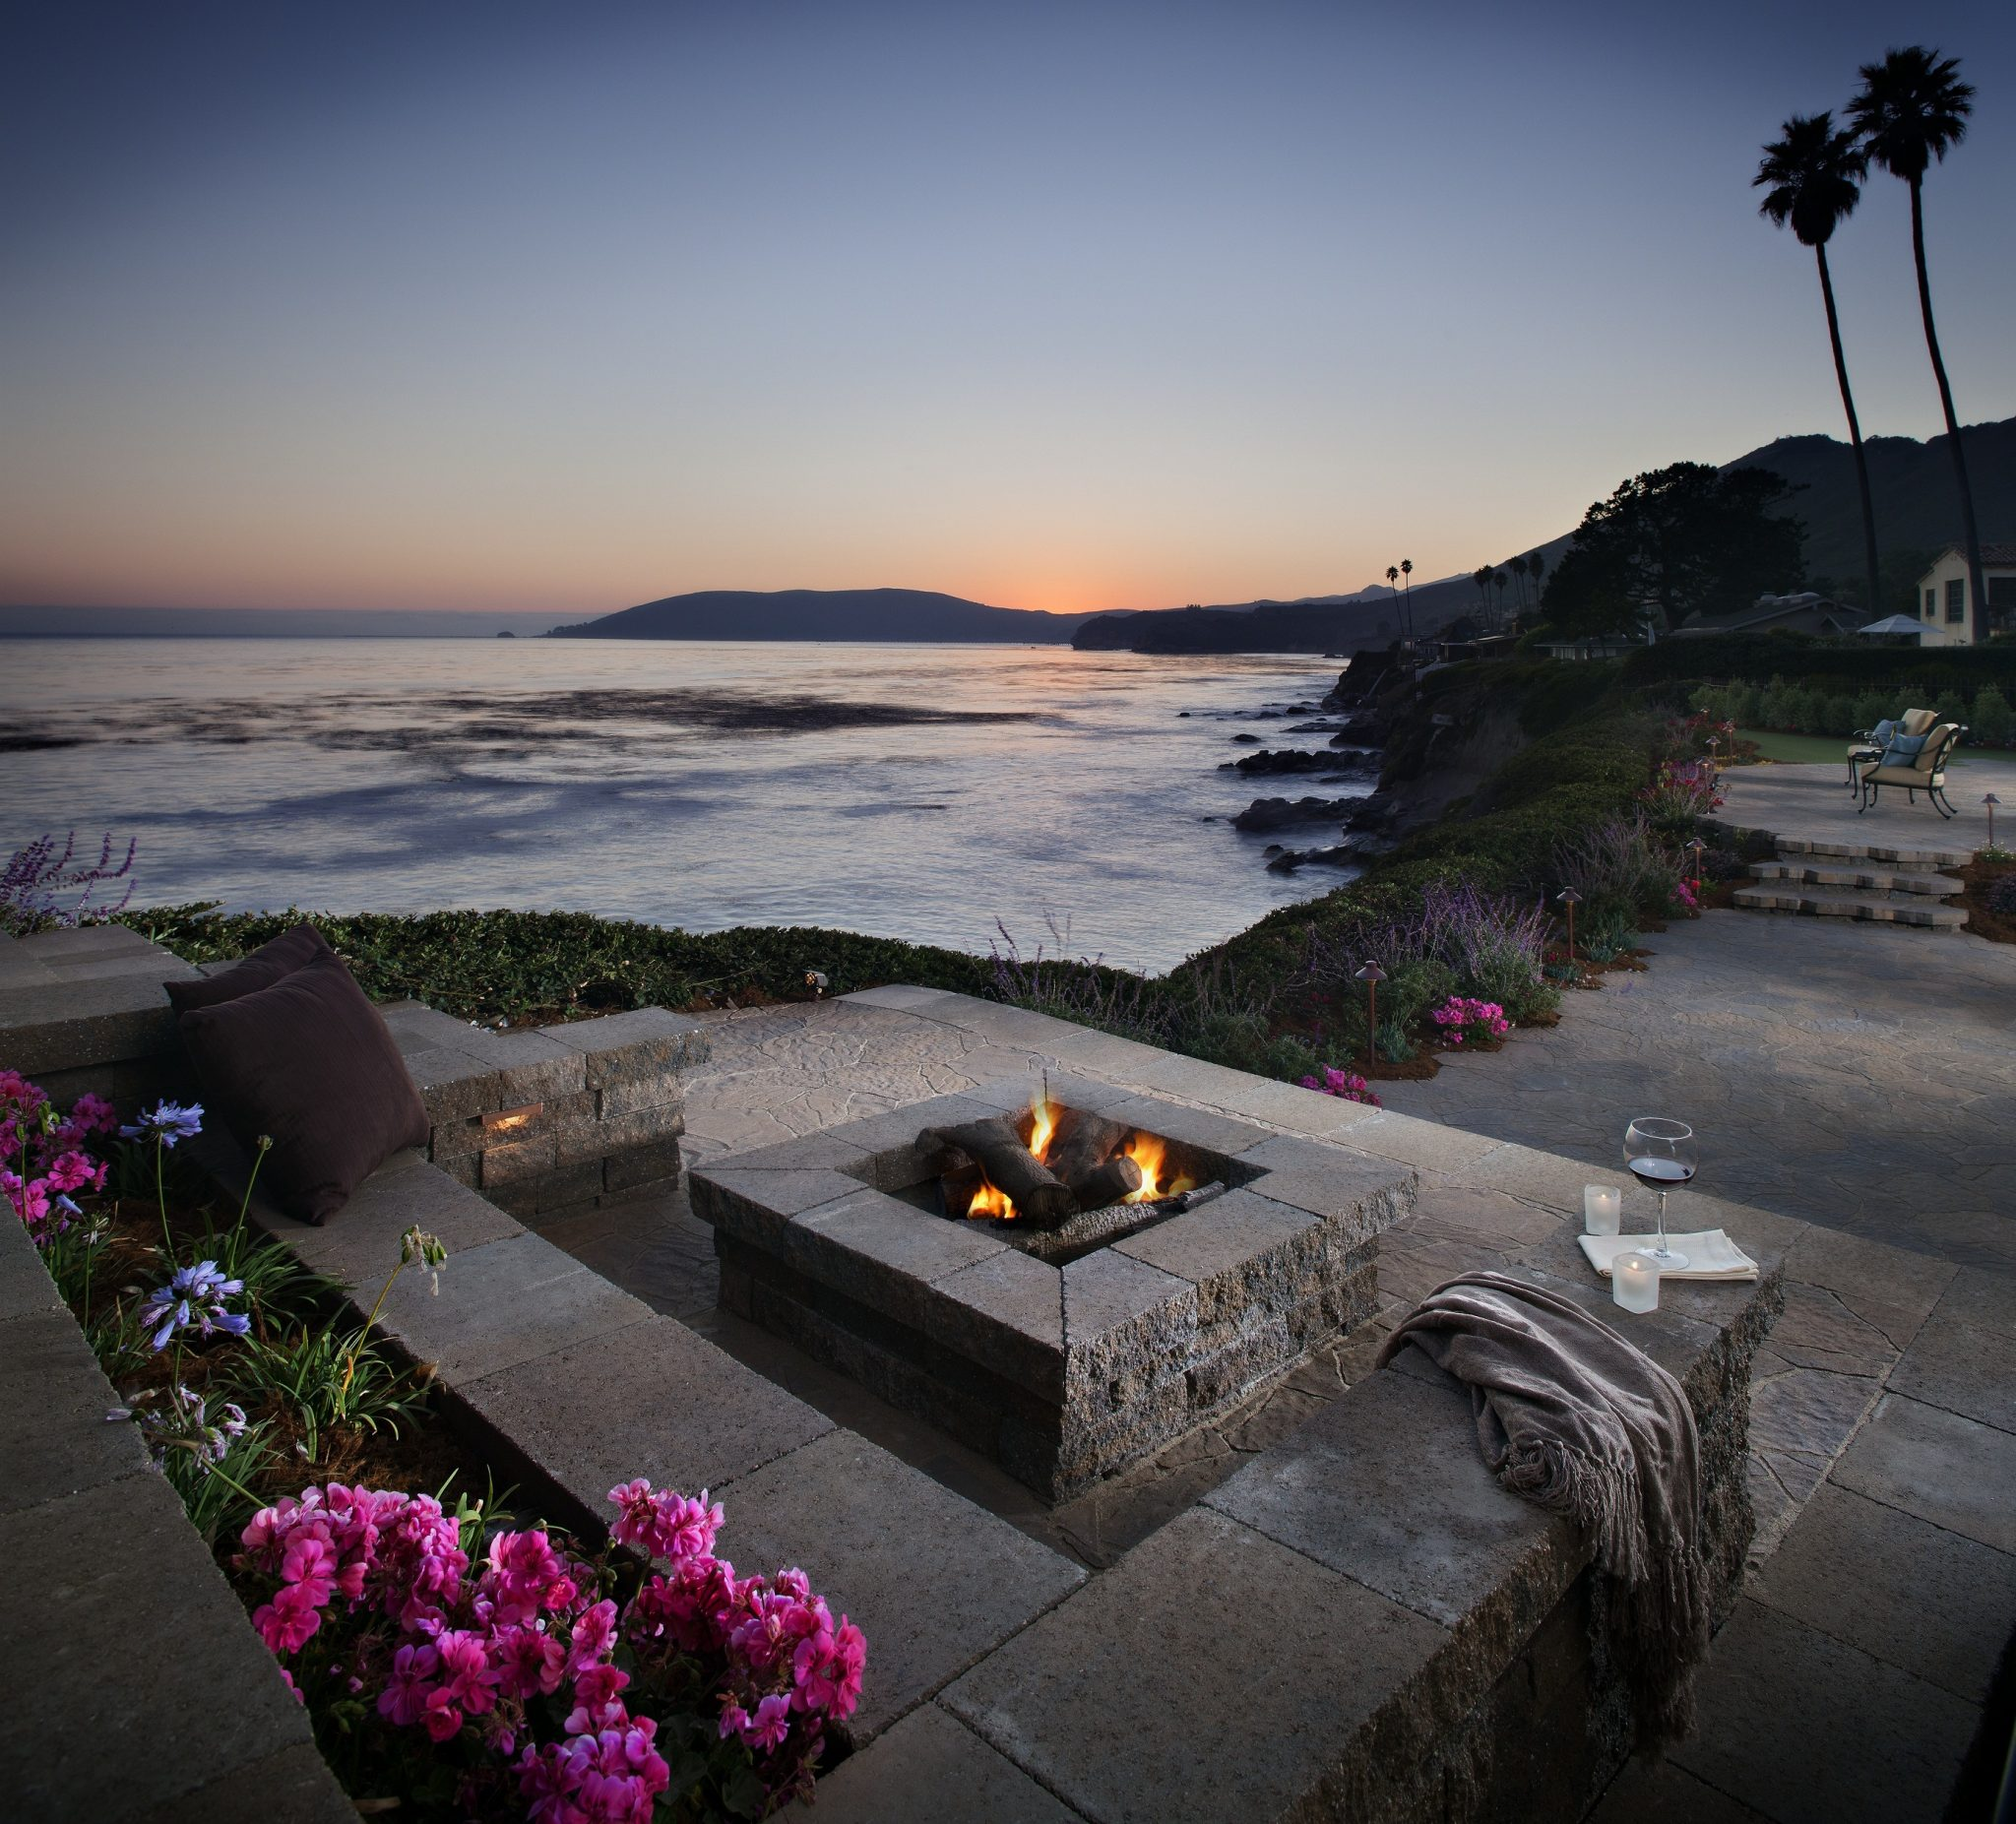 stainless steel patio furniture: oceanside home